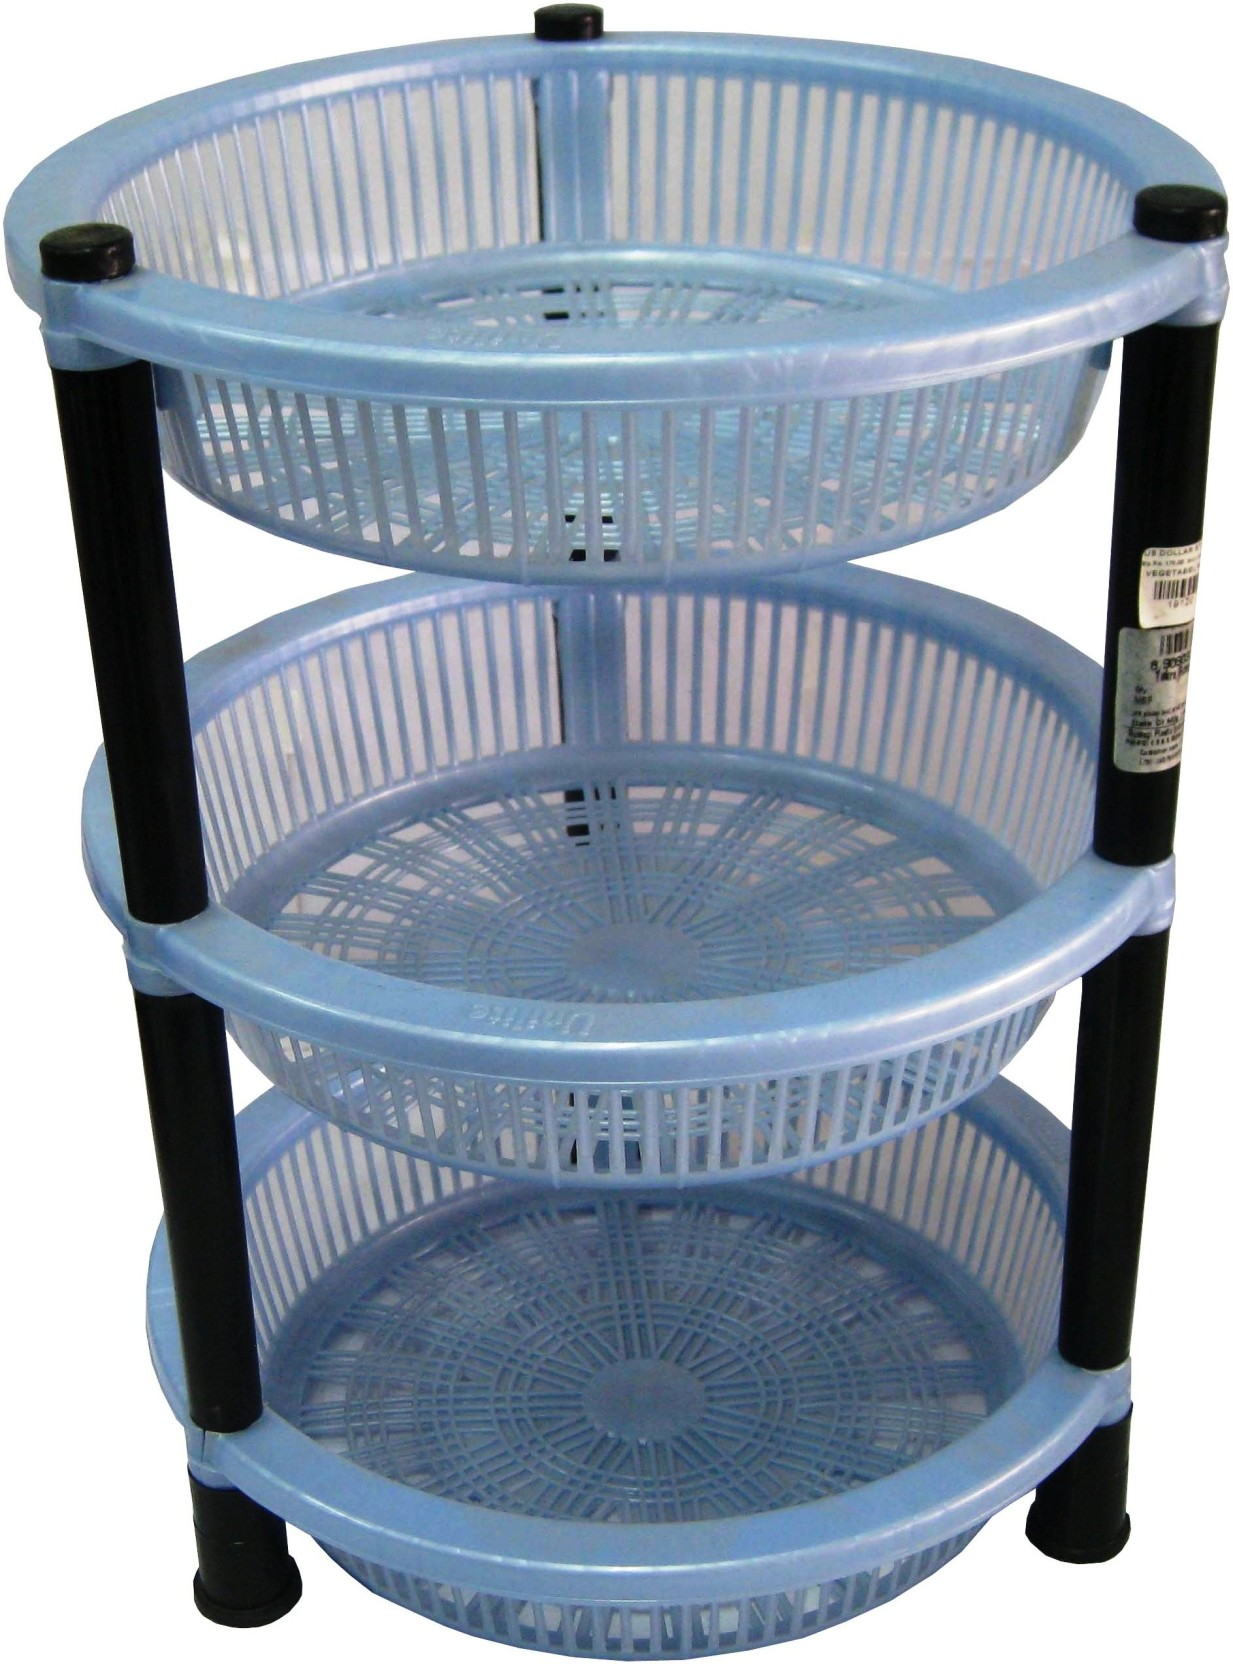 nanson plastic kitchen rack price in india buy nanson plastic kitchen rack online at. Black Bedroom Furniture Sets. Home Design Ideas